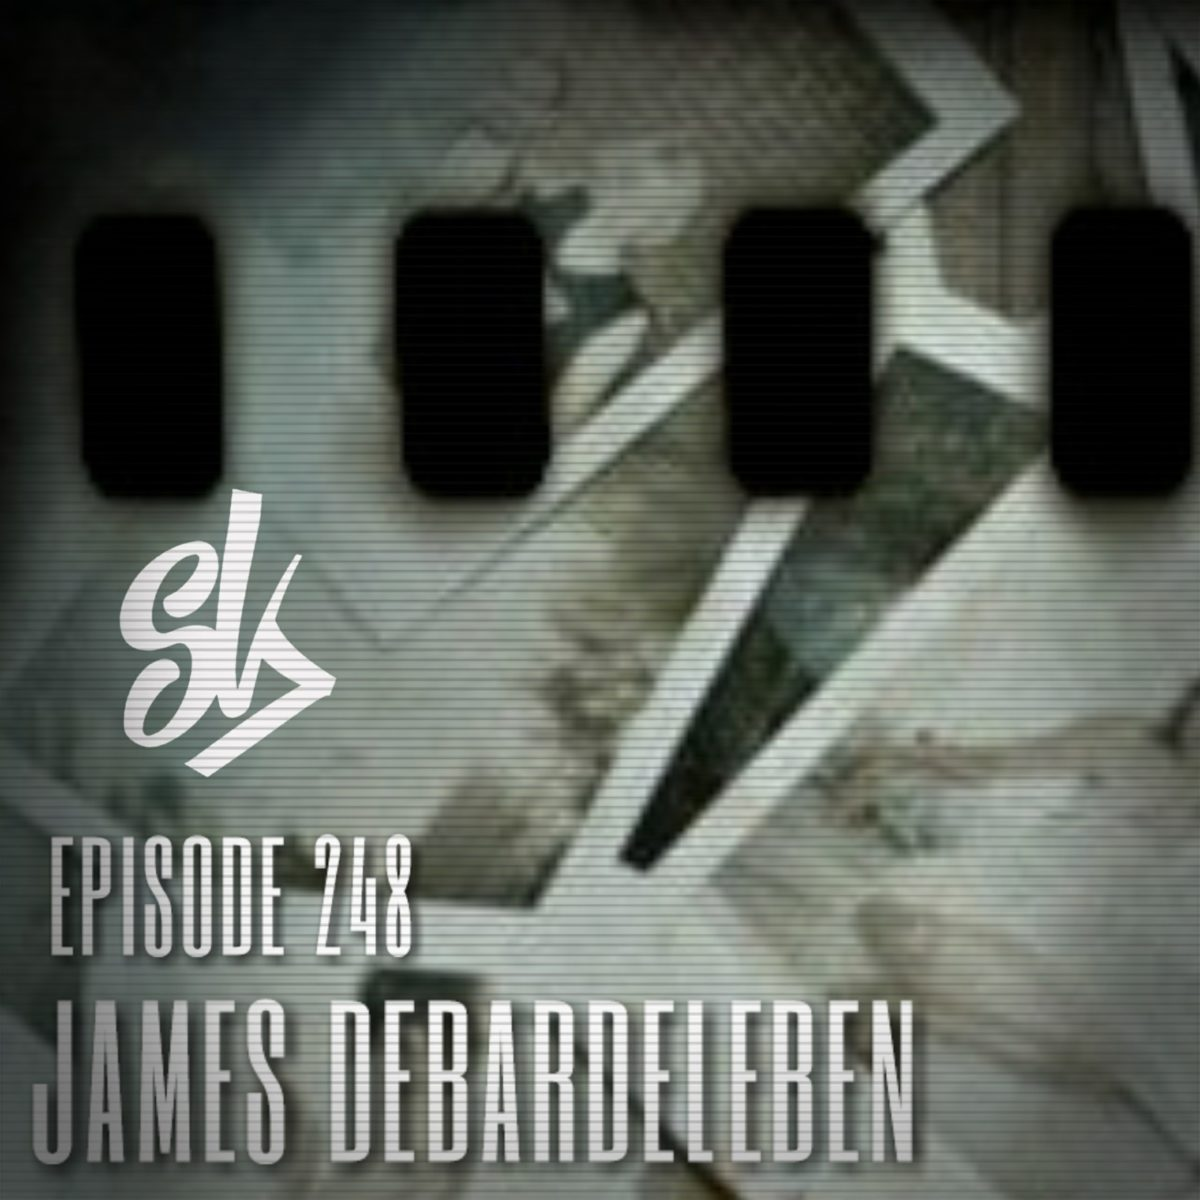 sofa king podcast the best beds in uk episode 248 james mike debardeleben mall passer